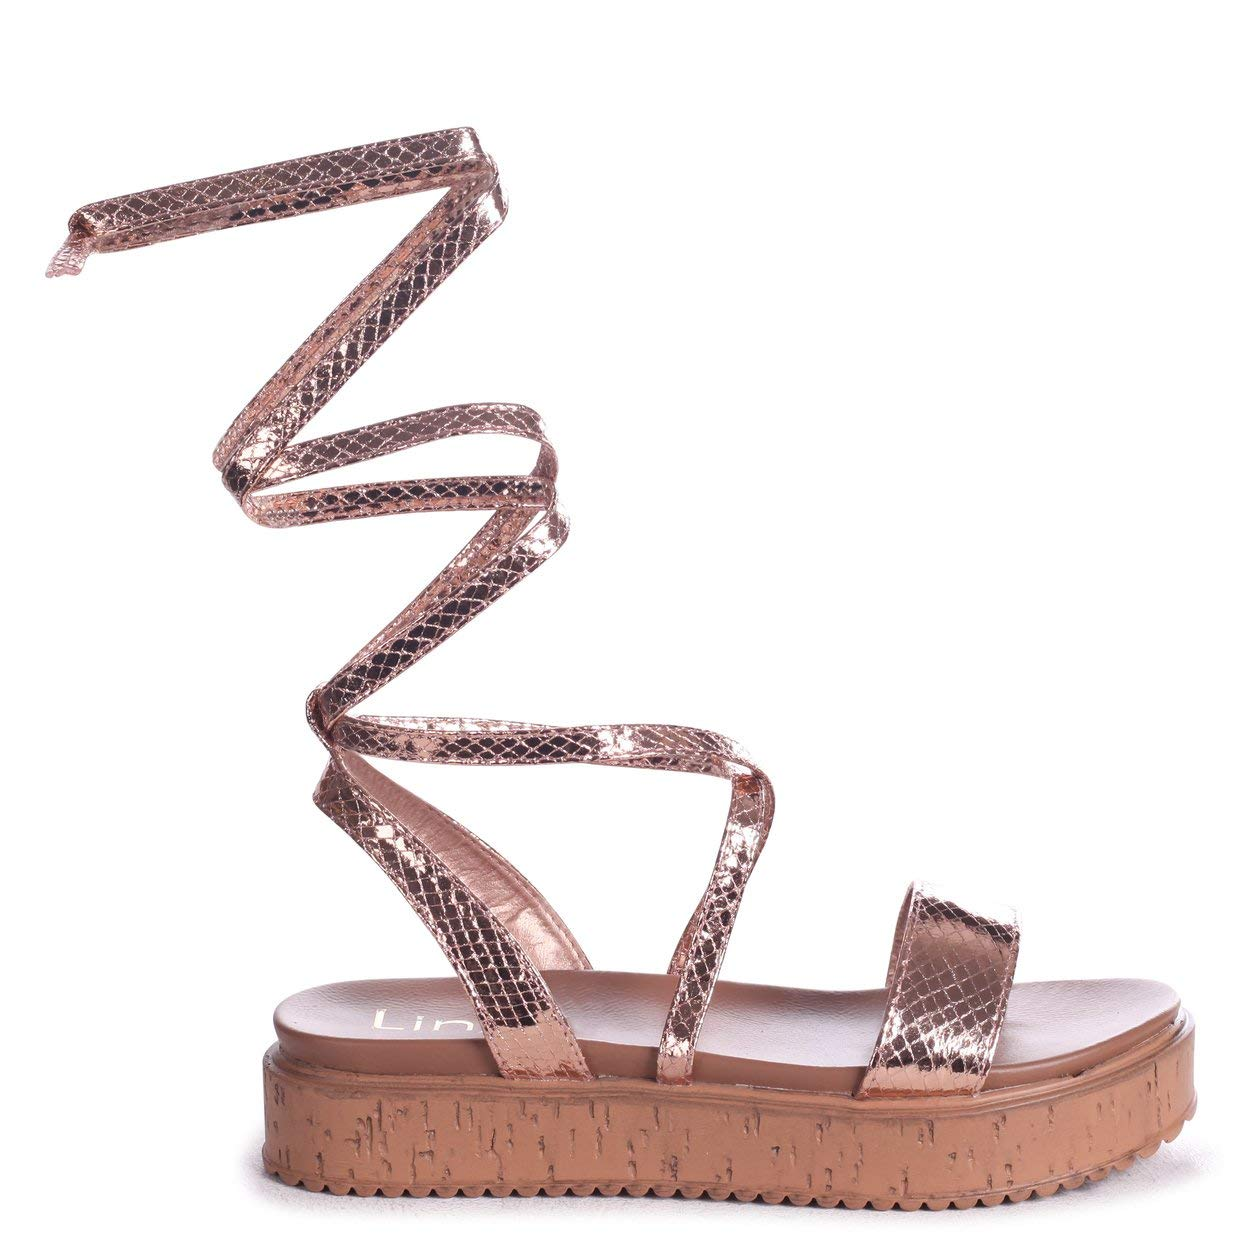 fd056283e58 Linzi Trudy - Rose Gold Snake Tie Up Espadrille Inspired Flatform   Amazon.co.uk  Shoes   Bags